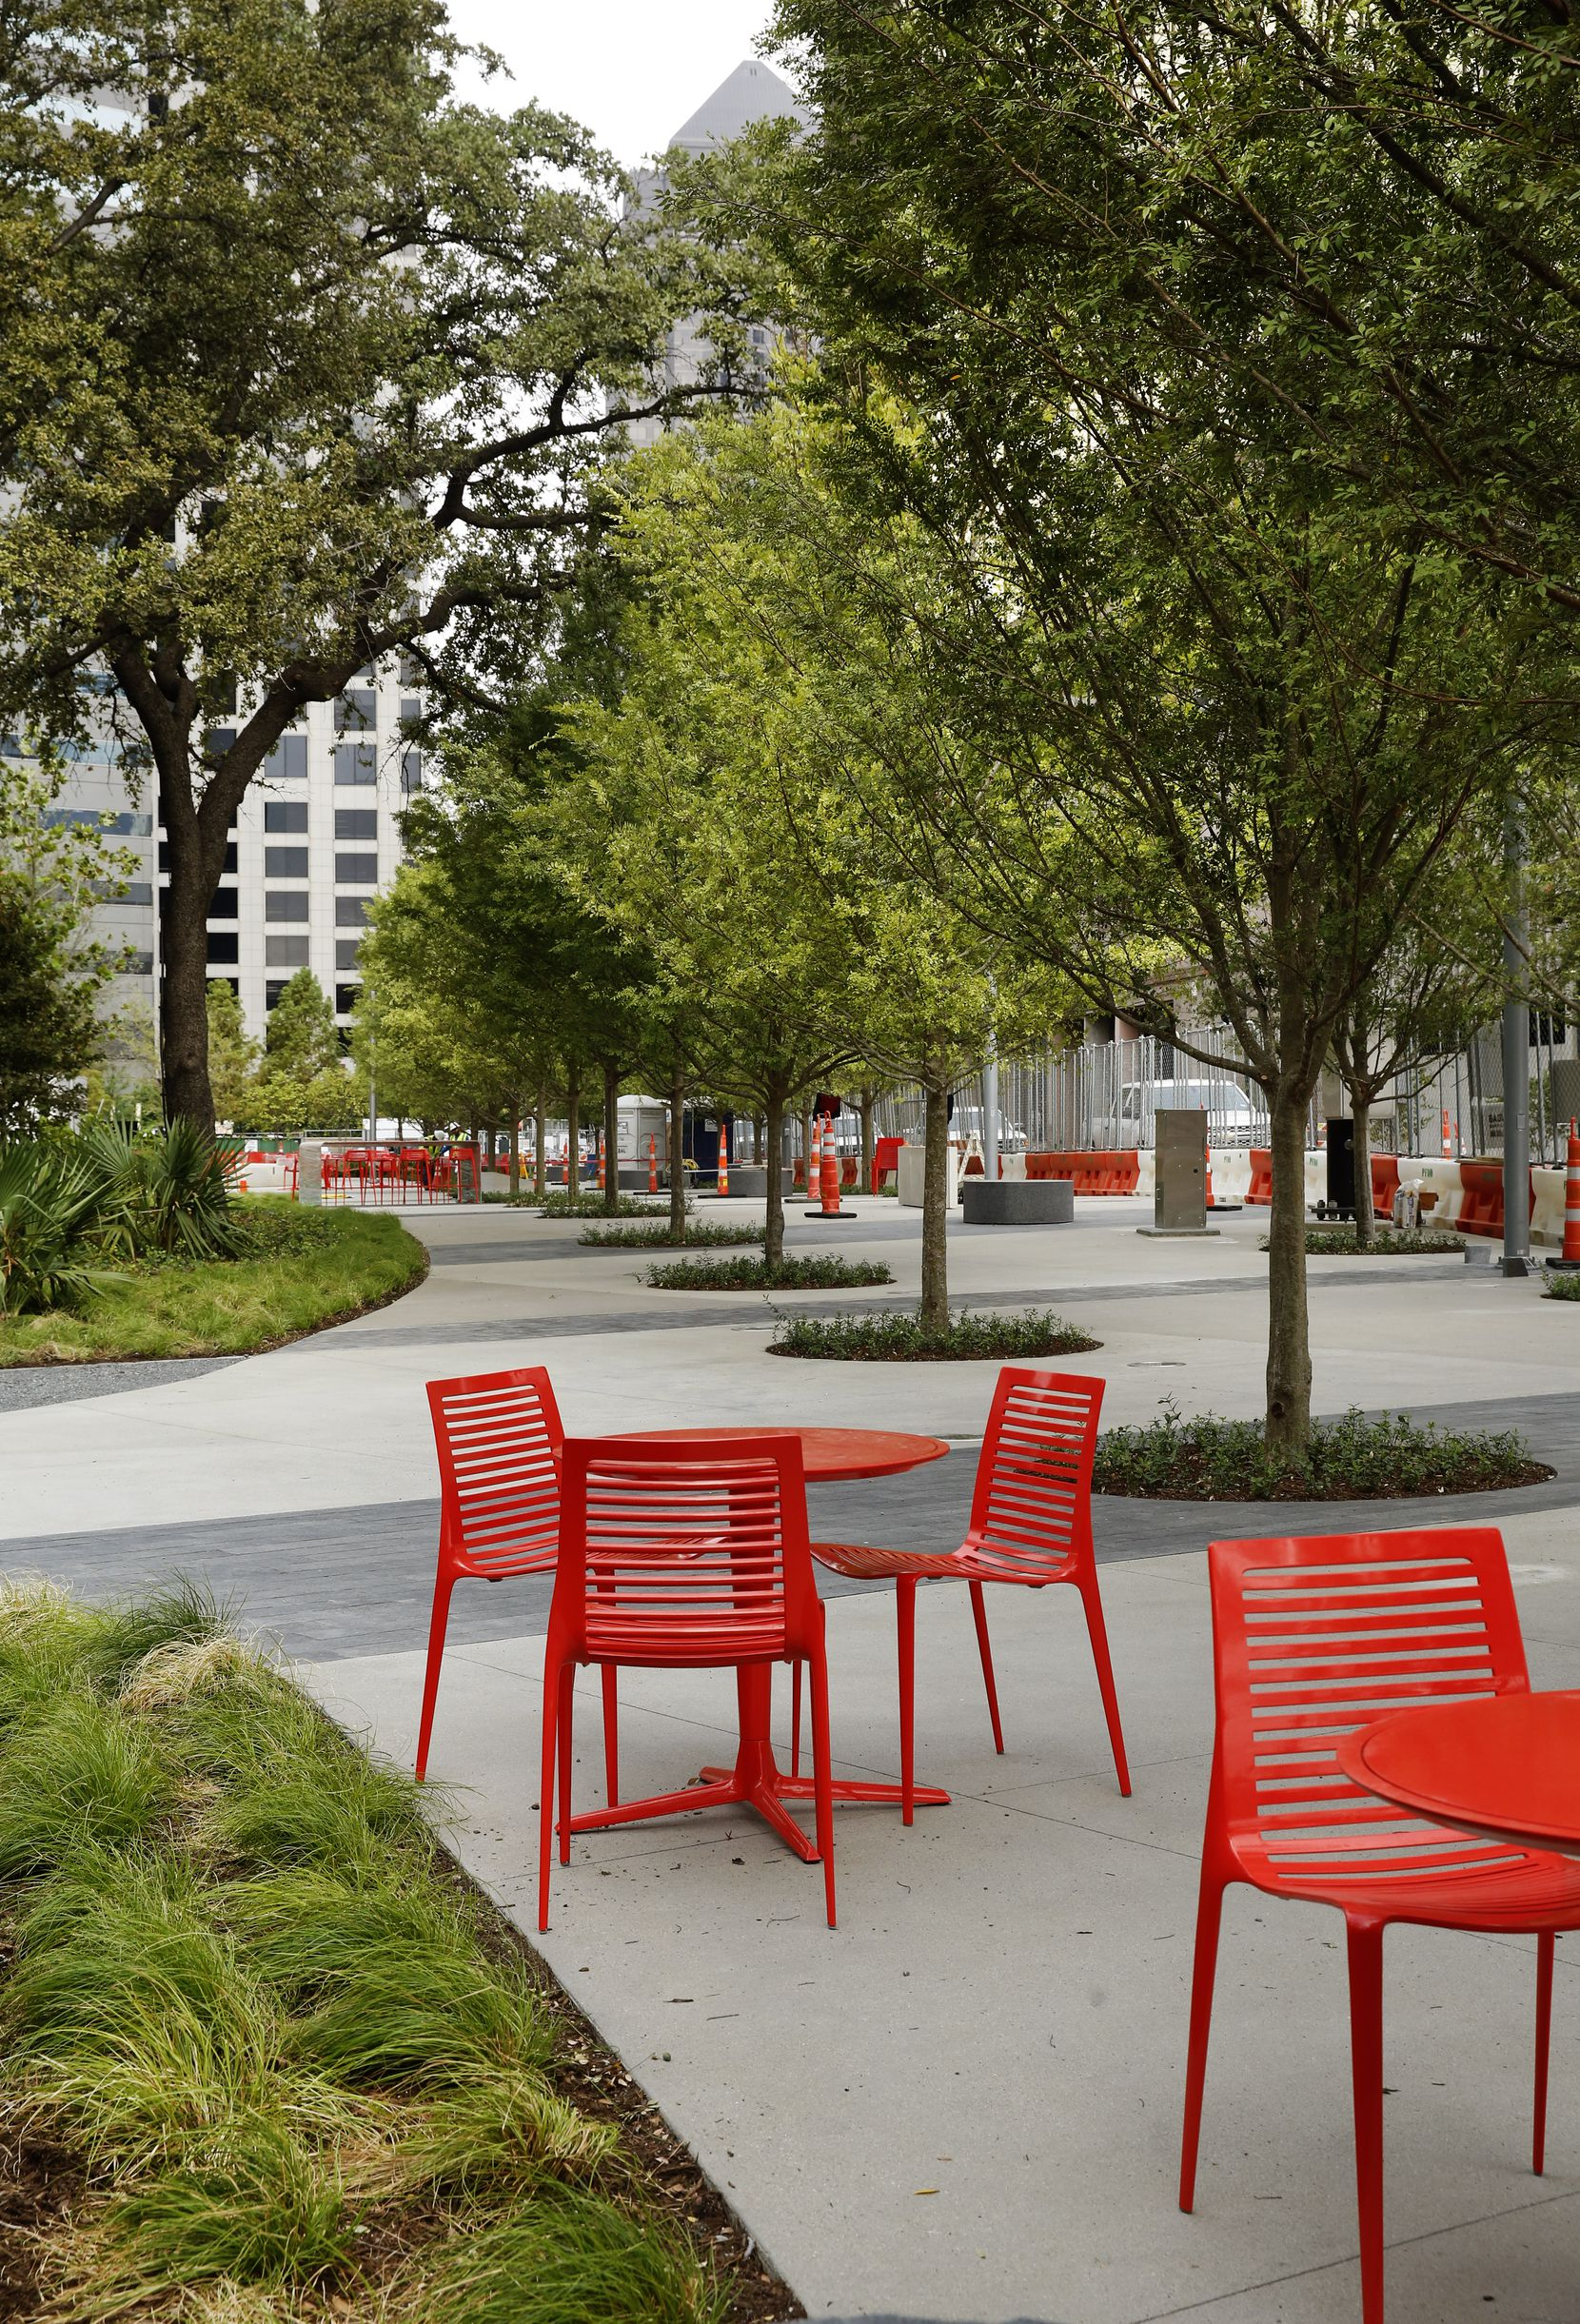 The Harwood Promenade, a tree-lined area along Harwood Street. Surrounded by high-rise buildings, Pacific Plaza, Dallas' newest downtown park, was designed by landscape architects SWA Group.